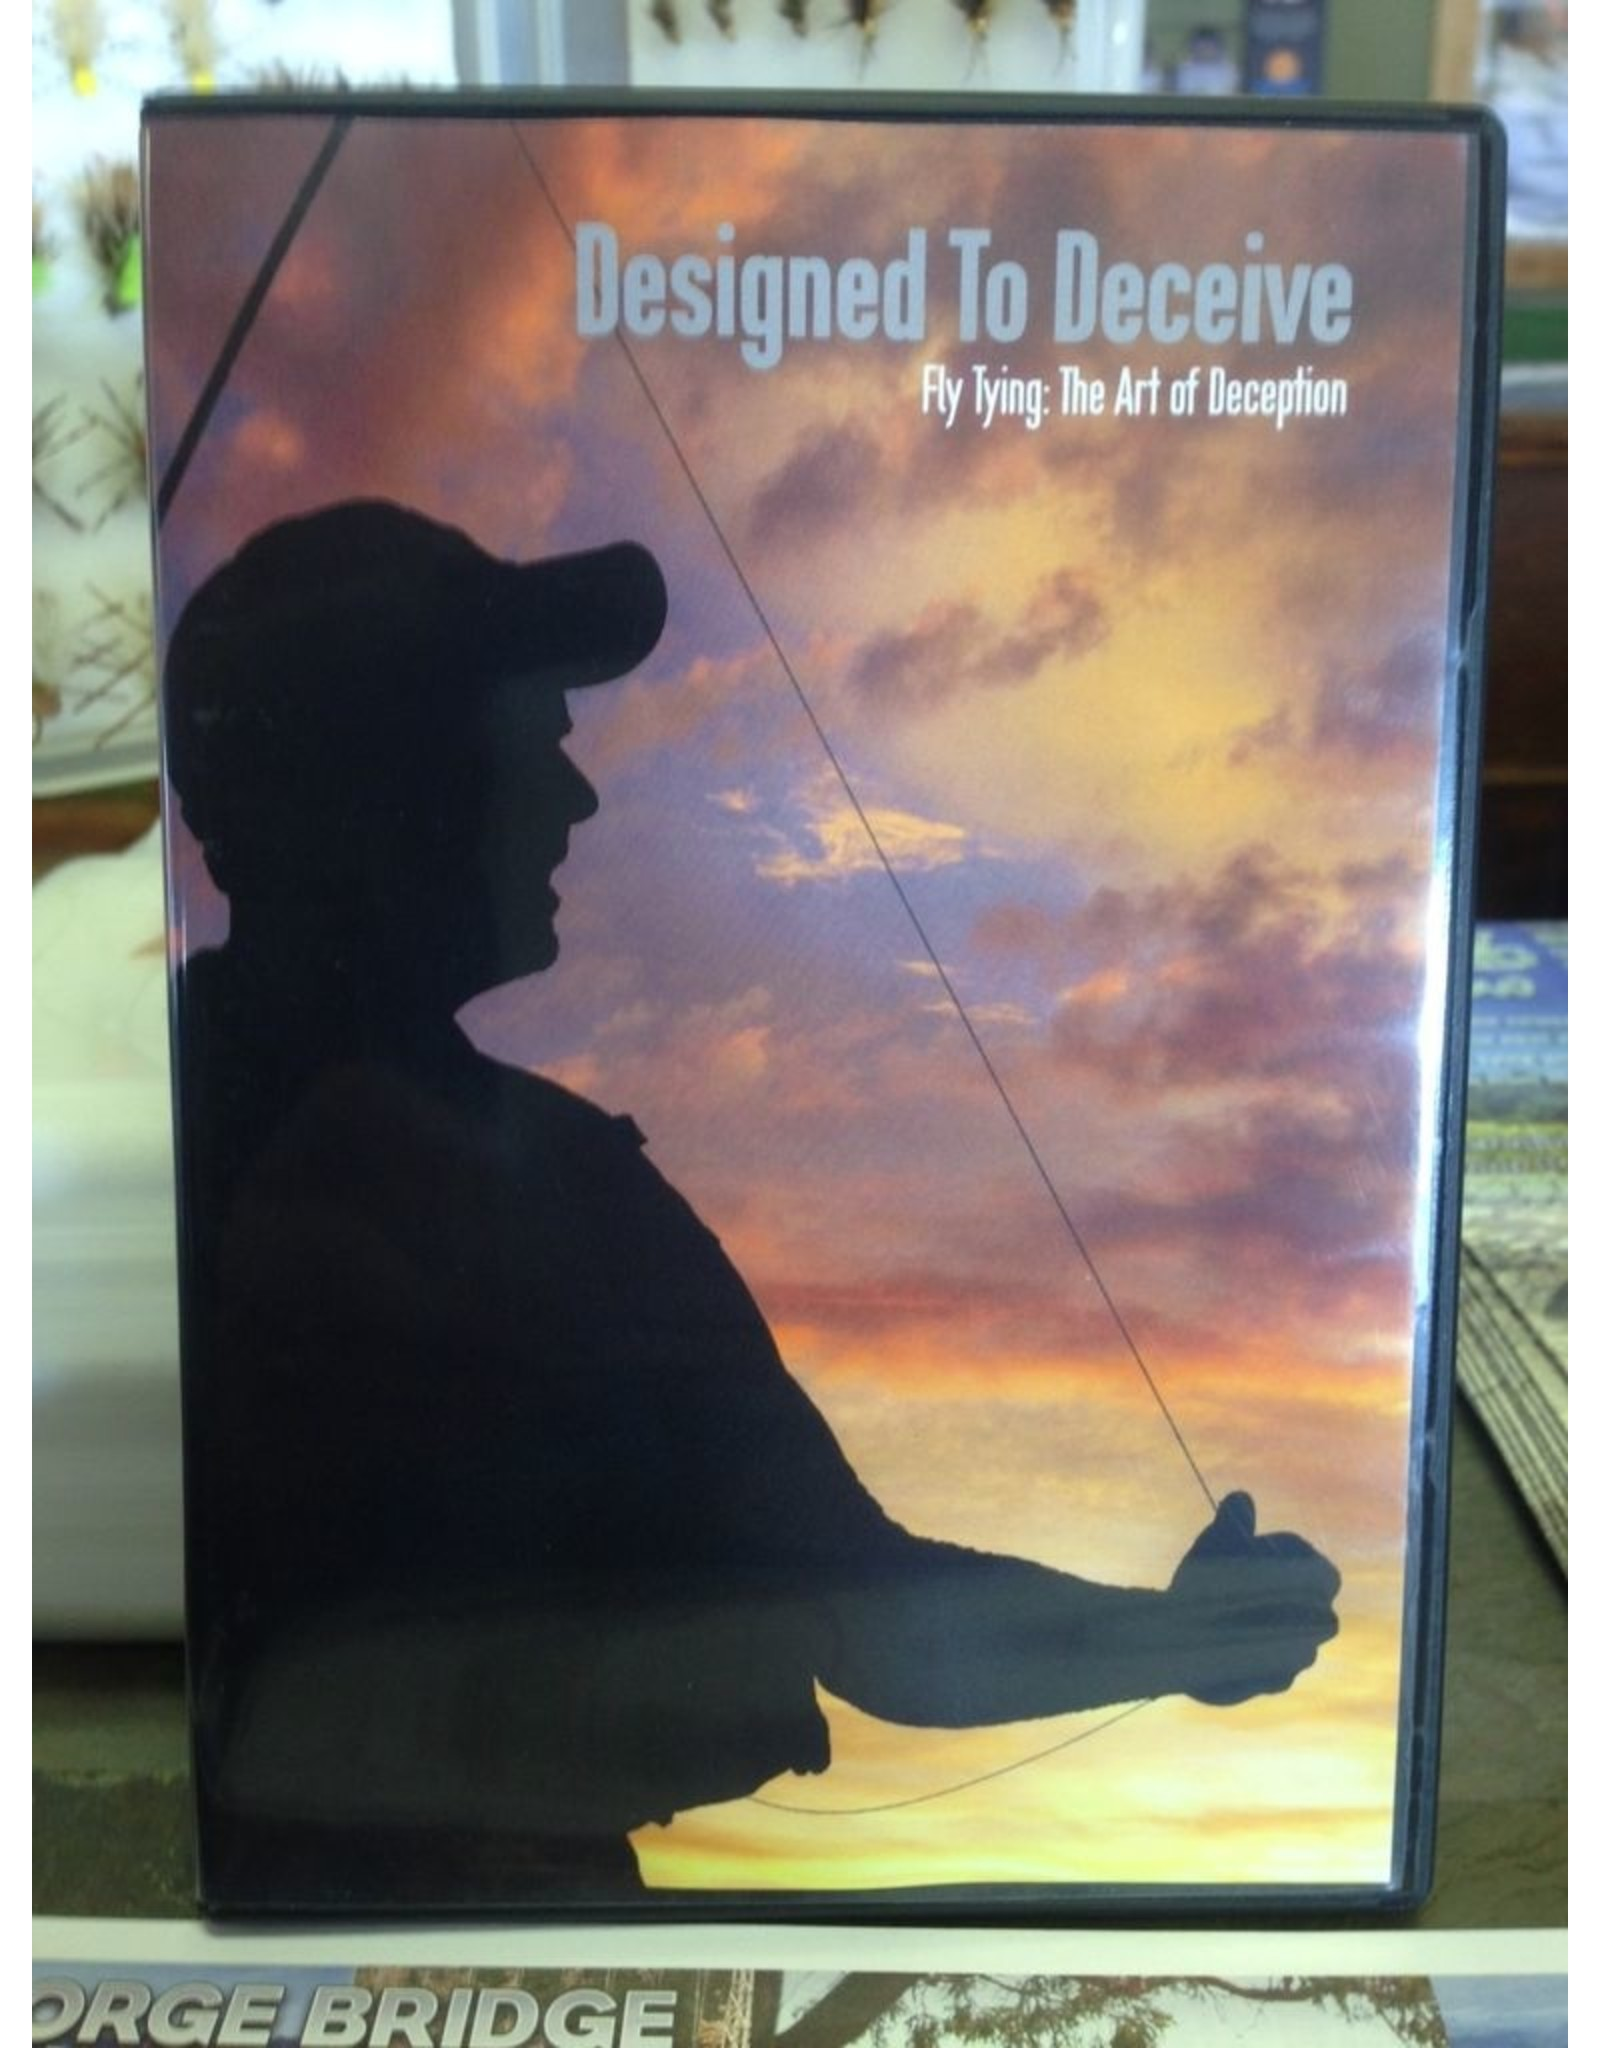 DVD Designed to Deceive